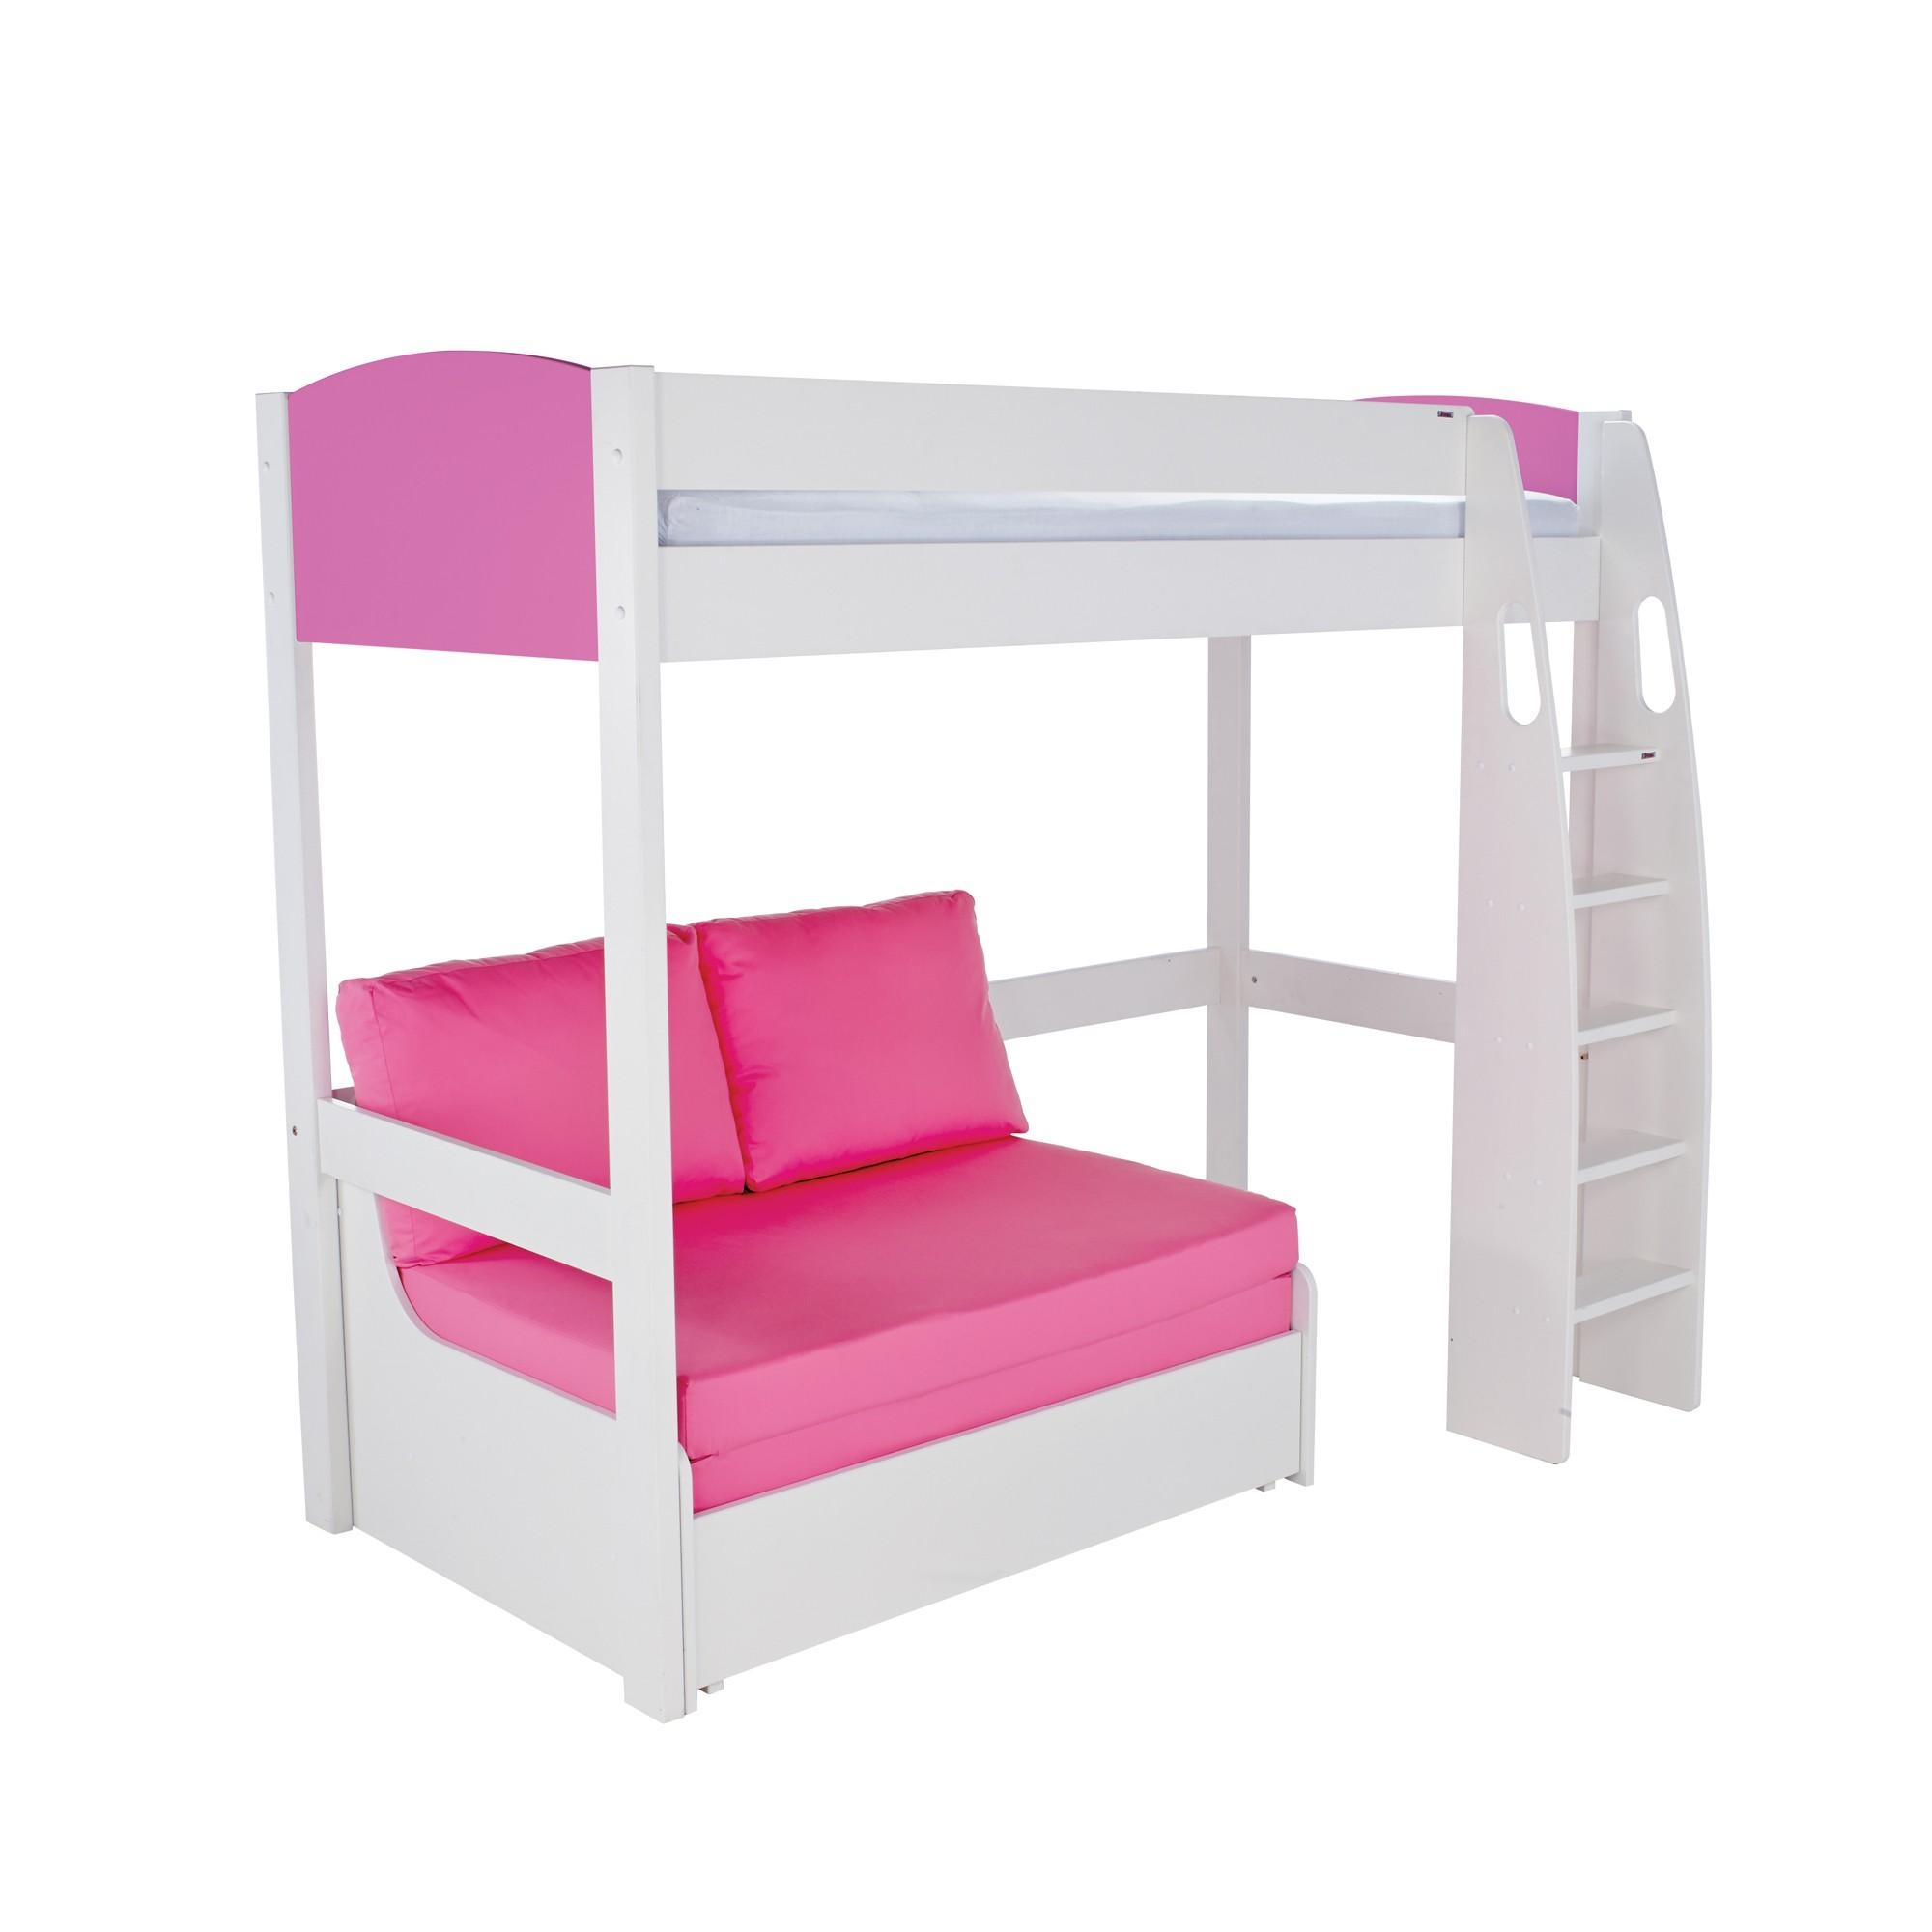 20 Collection Of High Sleeper Bed With Sofa Sofa Ideas